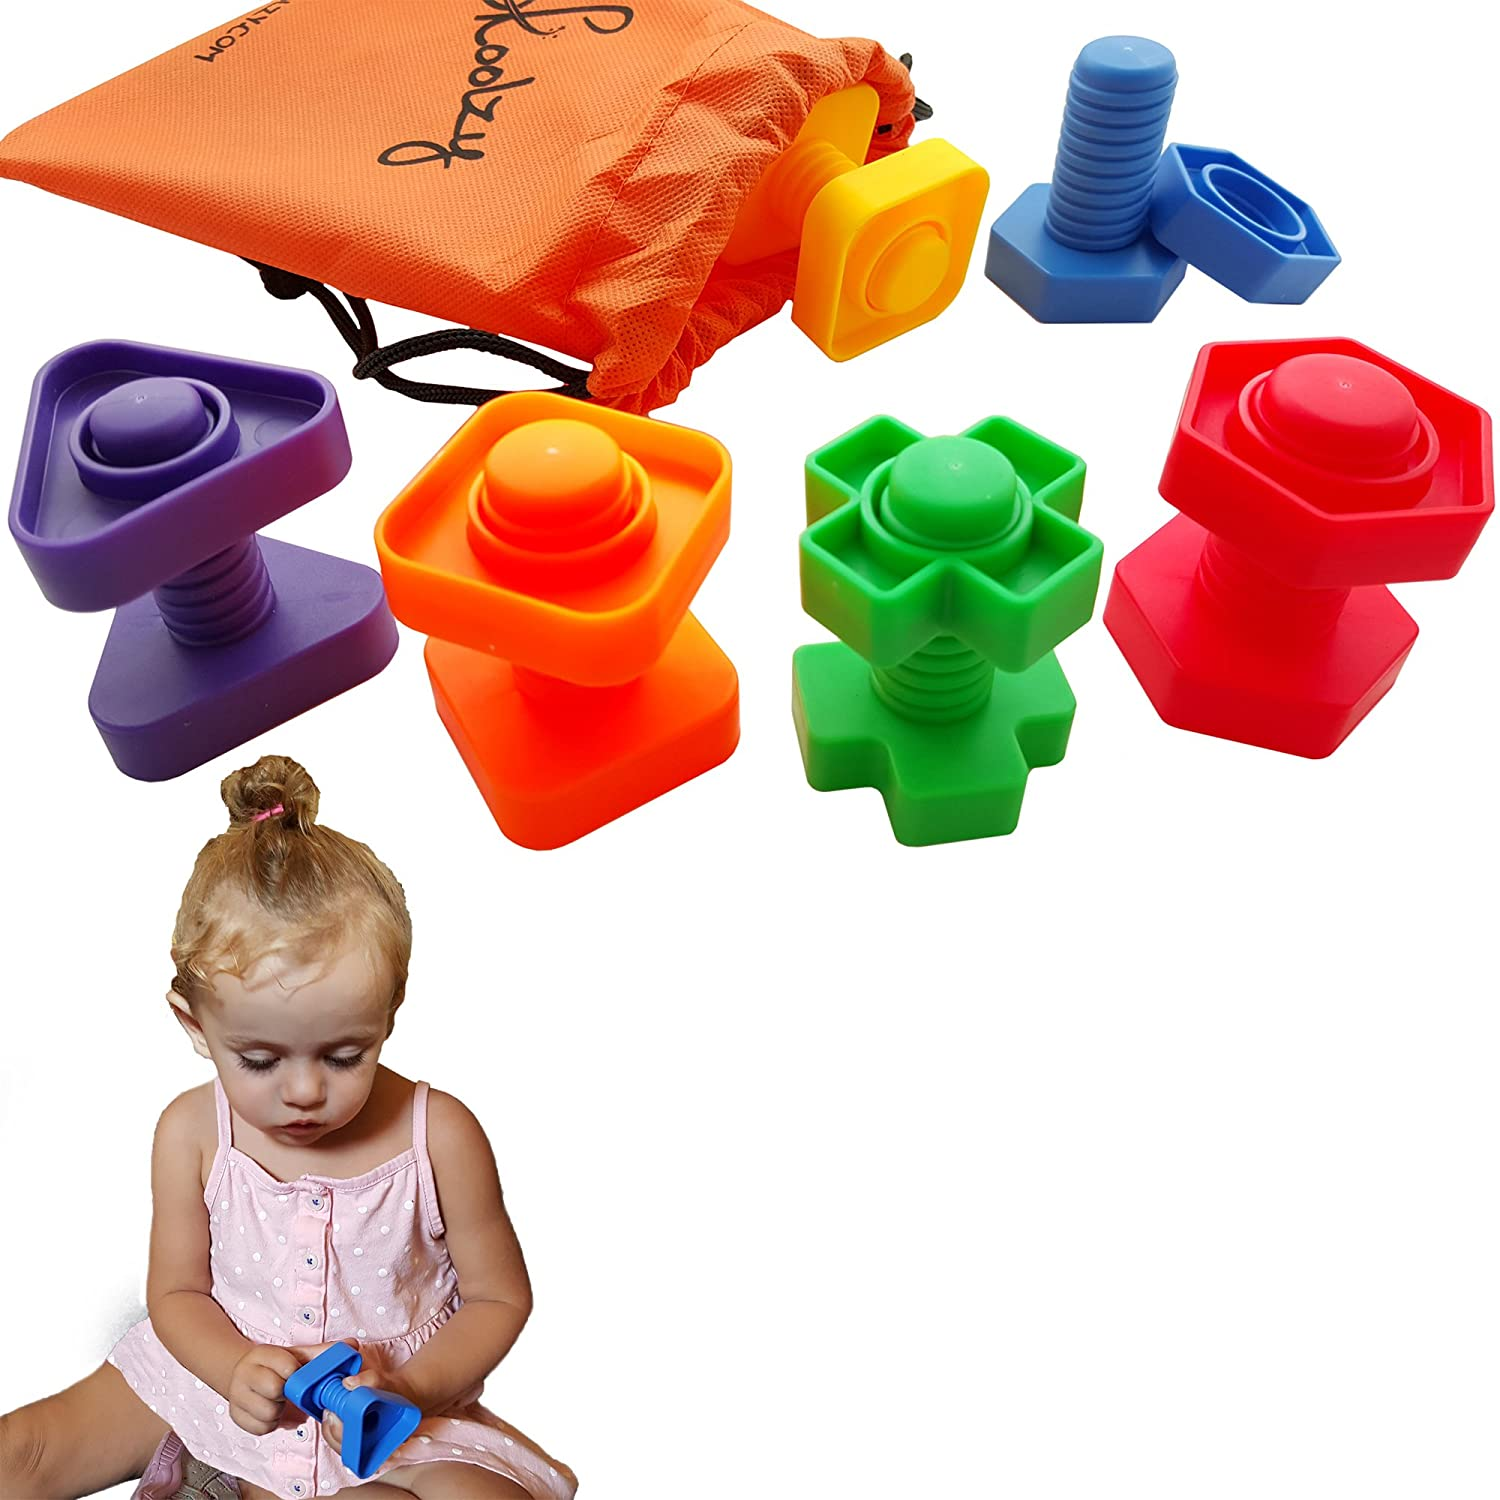 Jumbo Nuts and Bolts Toddler Toys - Skoolzy Montessori Toys Building Construction Set | 12 pc Occupational Therapy Tools Matching Fine Motor Skills for Toddlers Boys, Girls | Learning Activities eBook Review